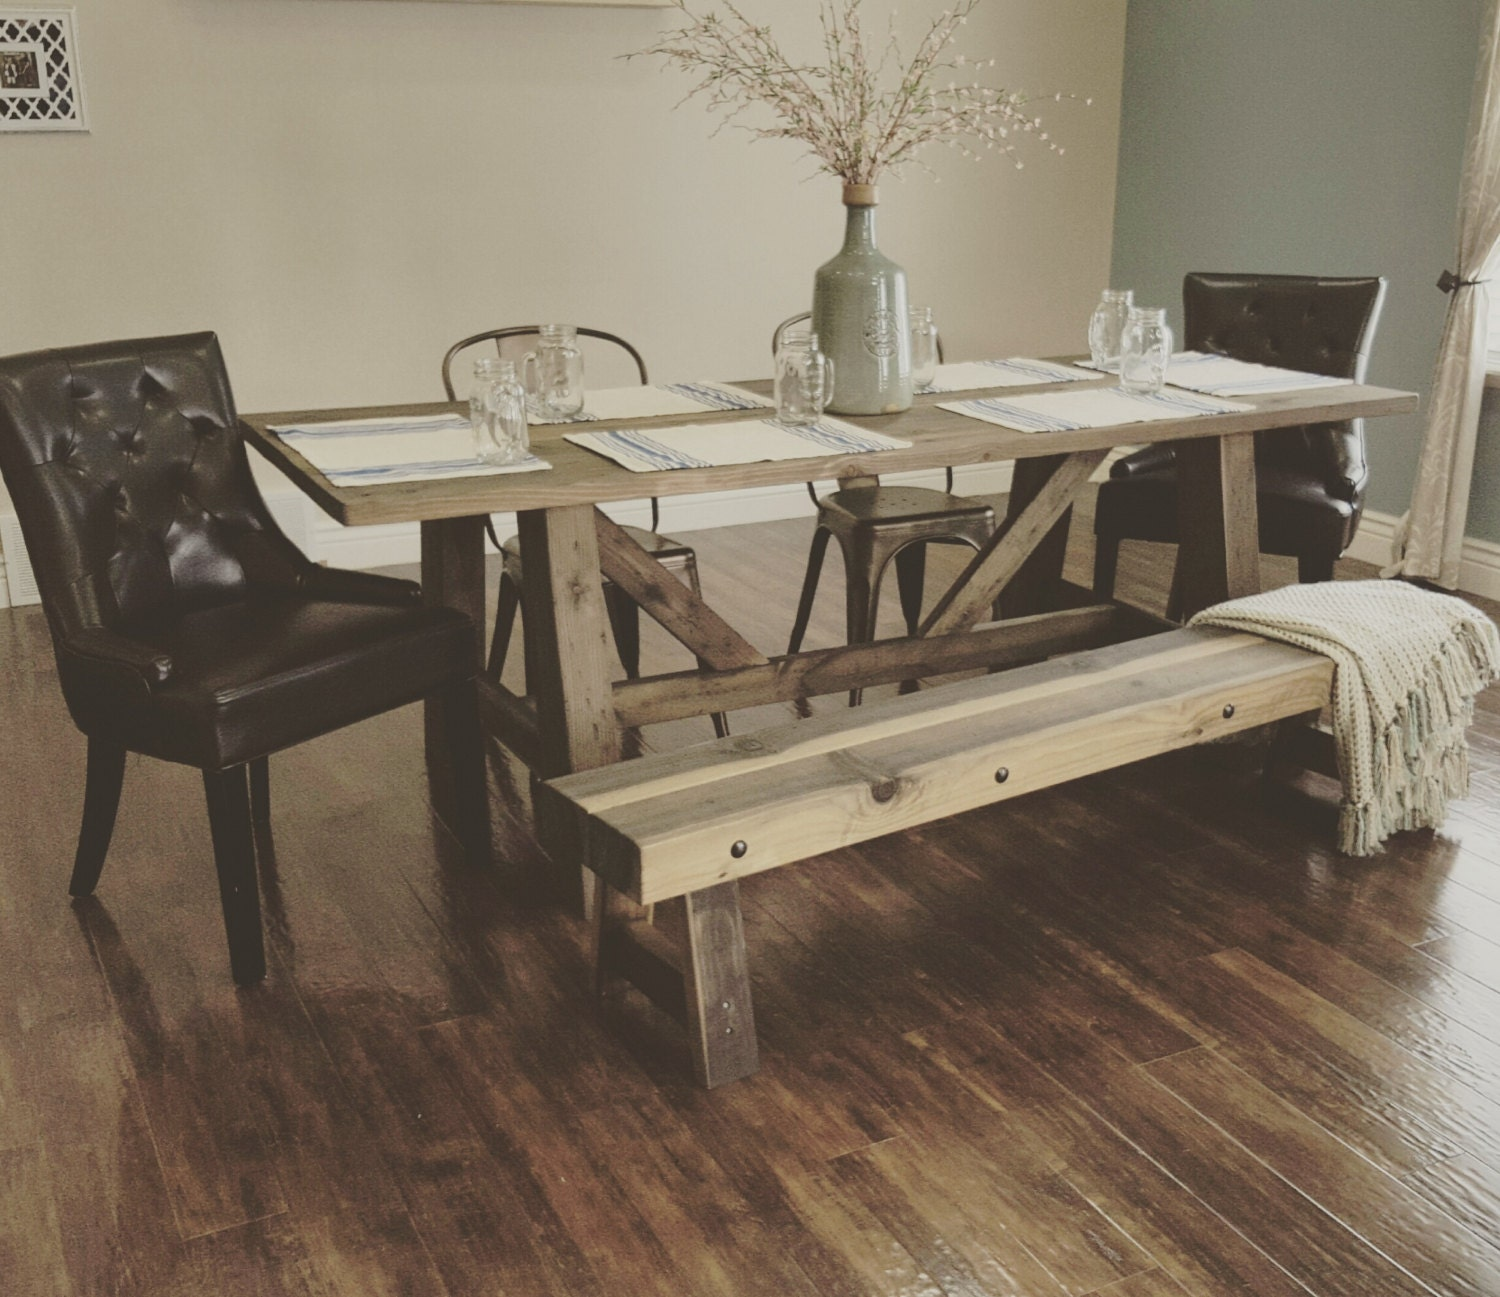 stunning handmade rustic farmhouse table by ModernRefinement